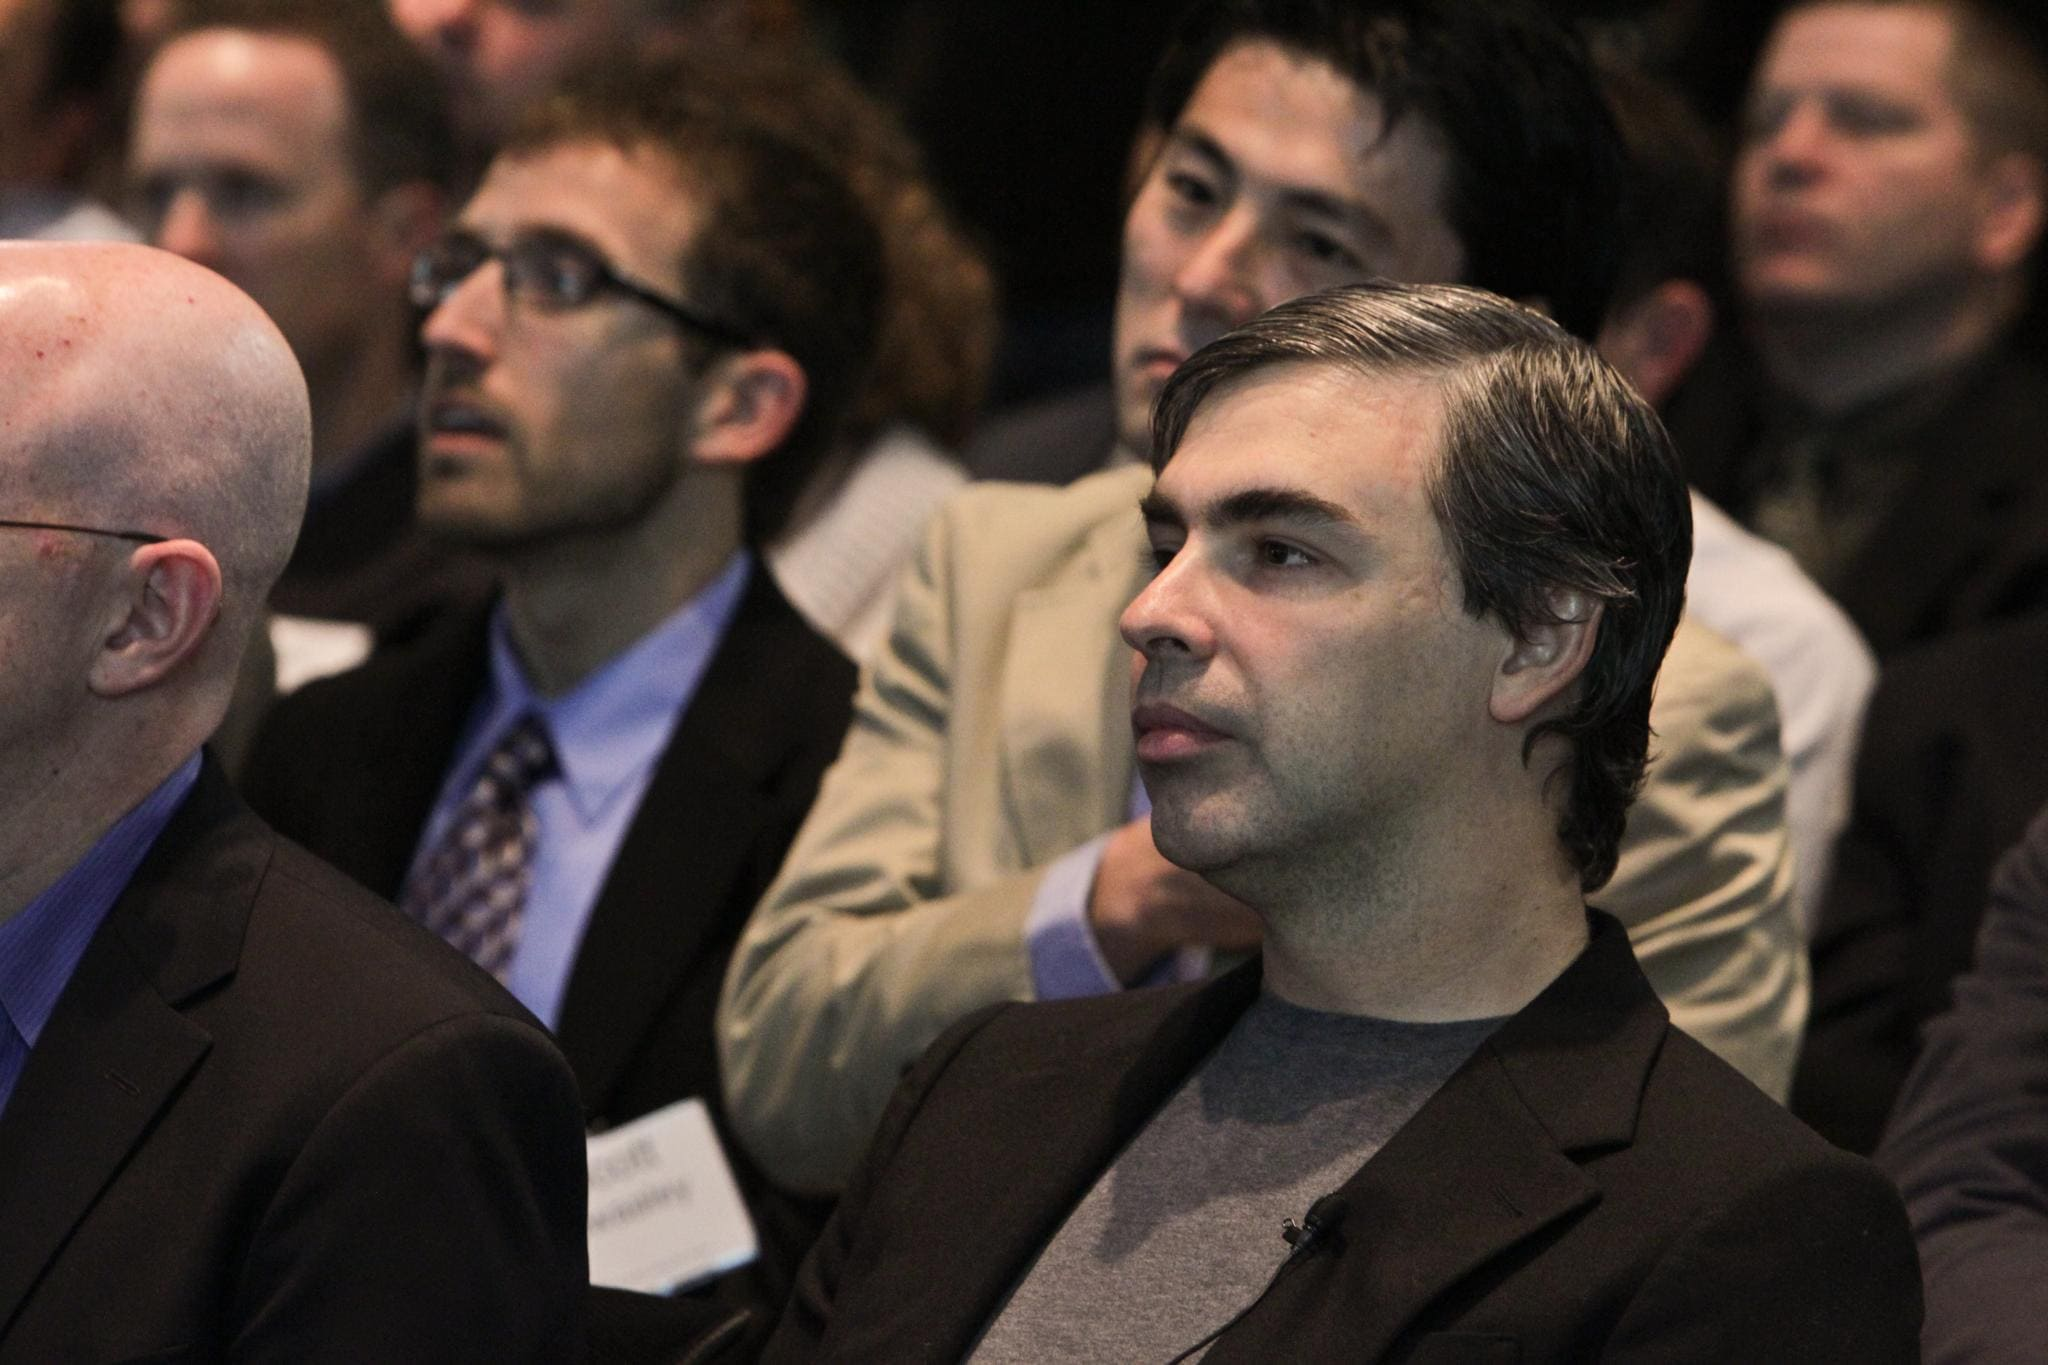 Larry Page Biography, Age, Wife, Salary, Net Worth, Wiki, & More 2